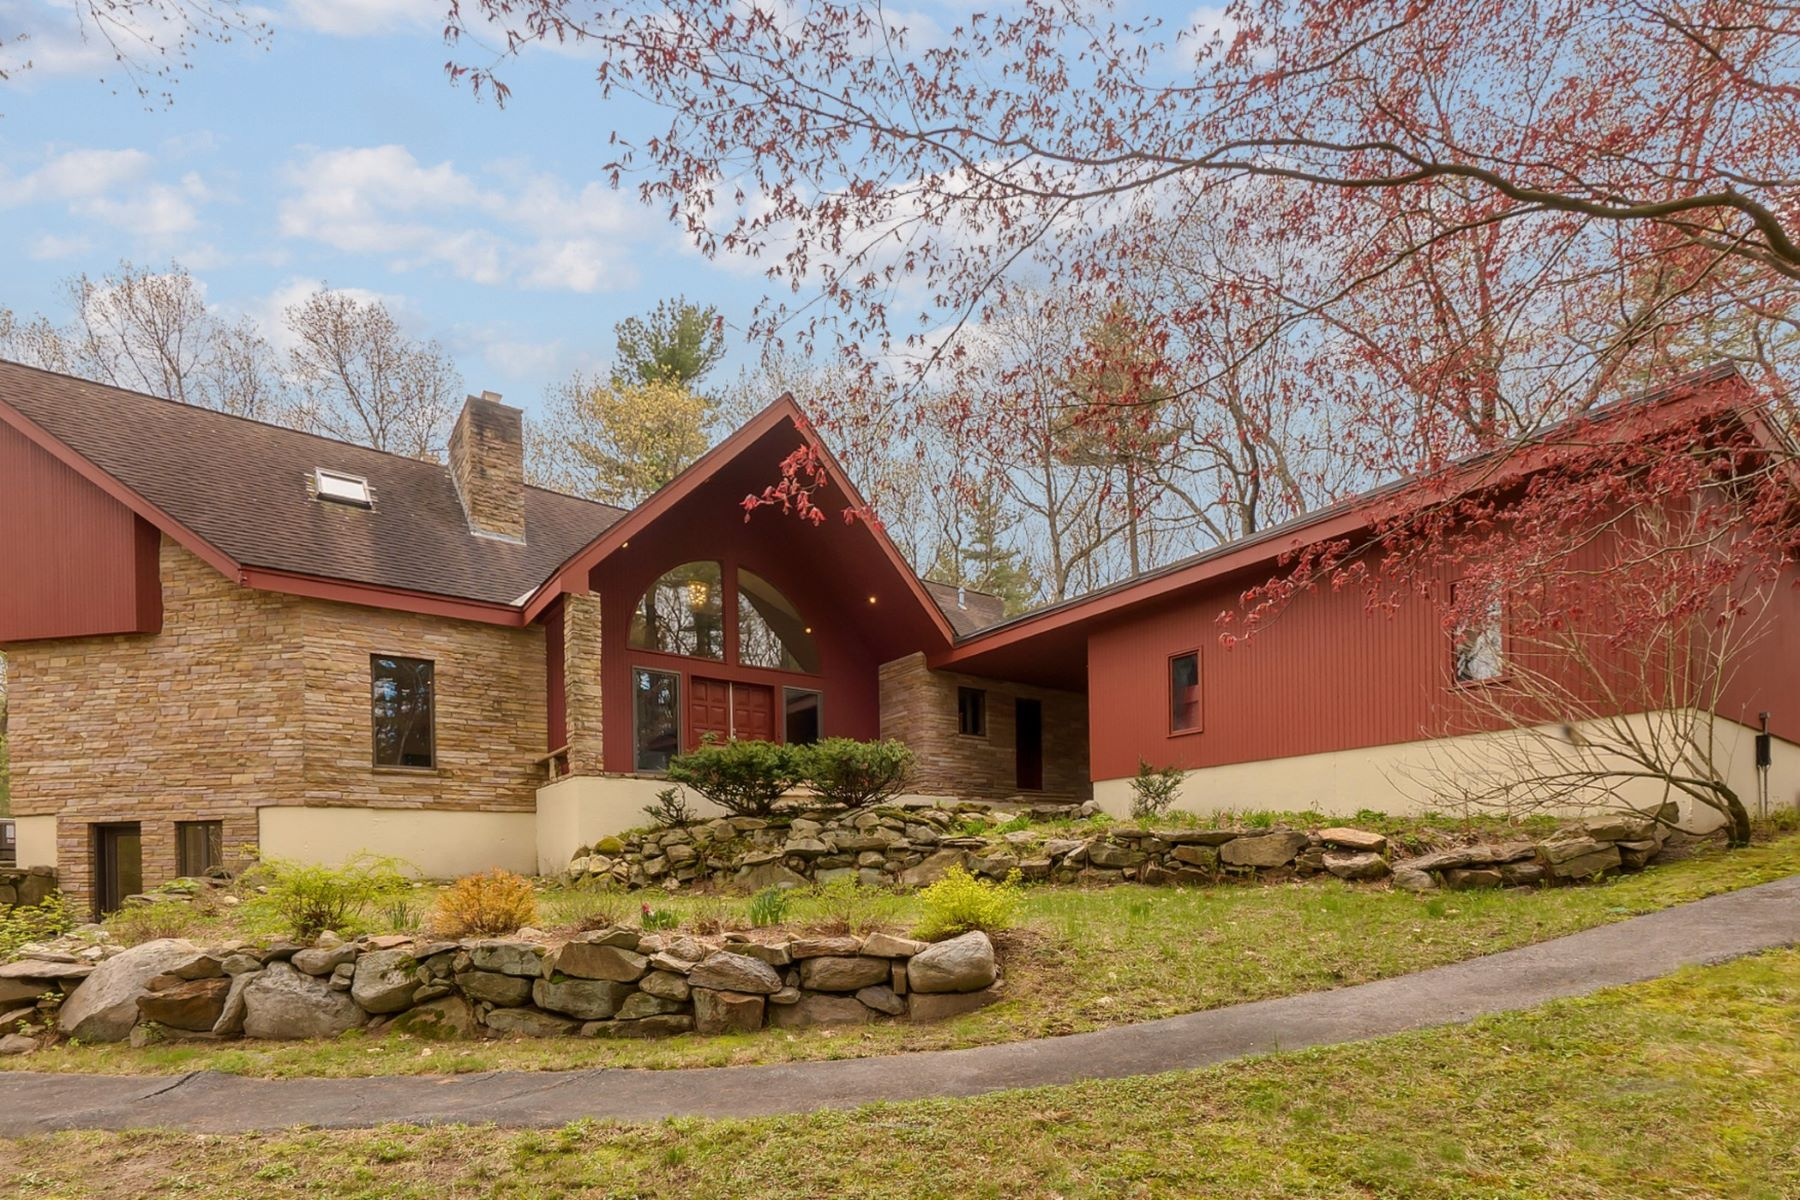 Single Family Home for Active at 264 Munroe Hill Road, Carlisle 264 Munroe Hill Rd Carlisle, Massachusetts 01741 United States